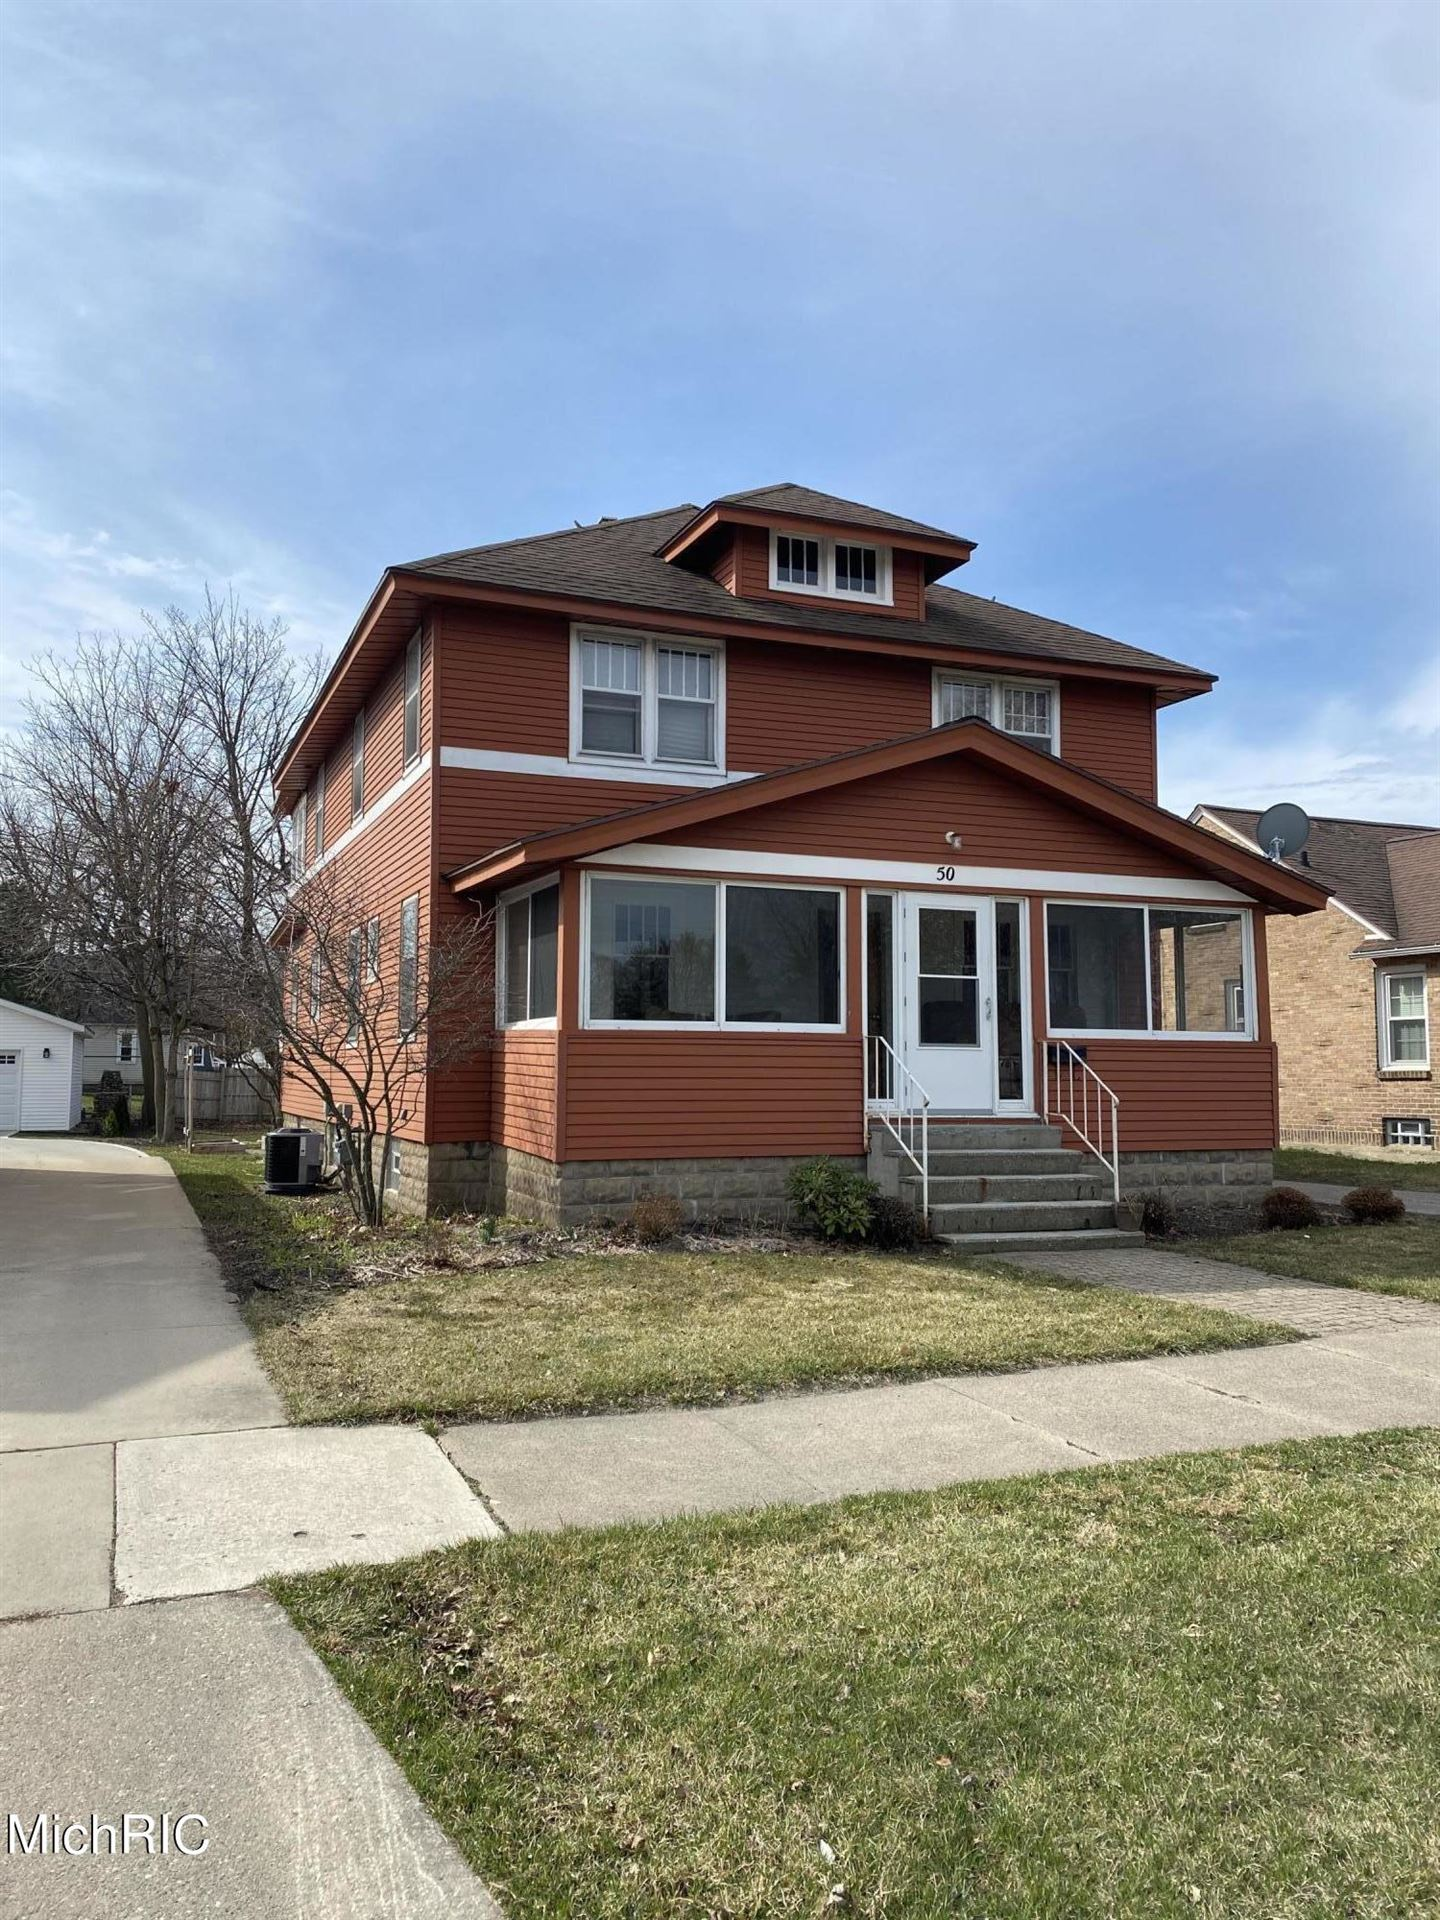 50 W 21st Street, Holland, MI 49423 - MLS#: 21009311